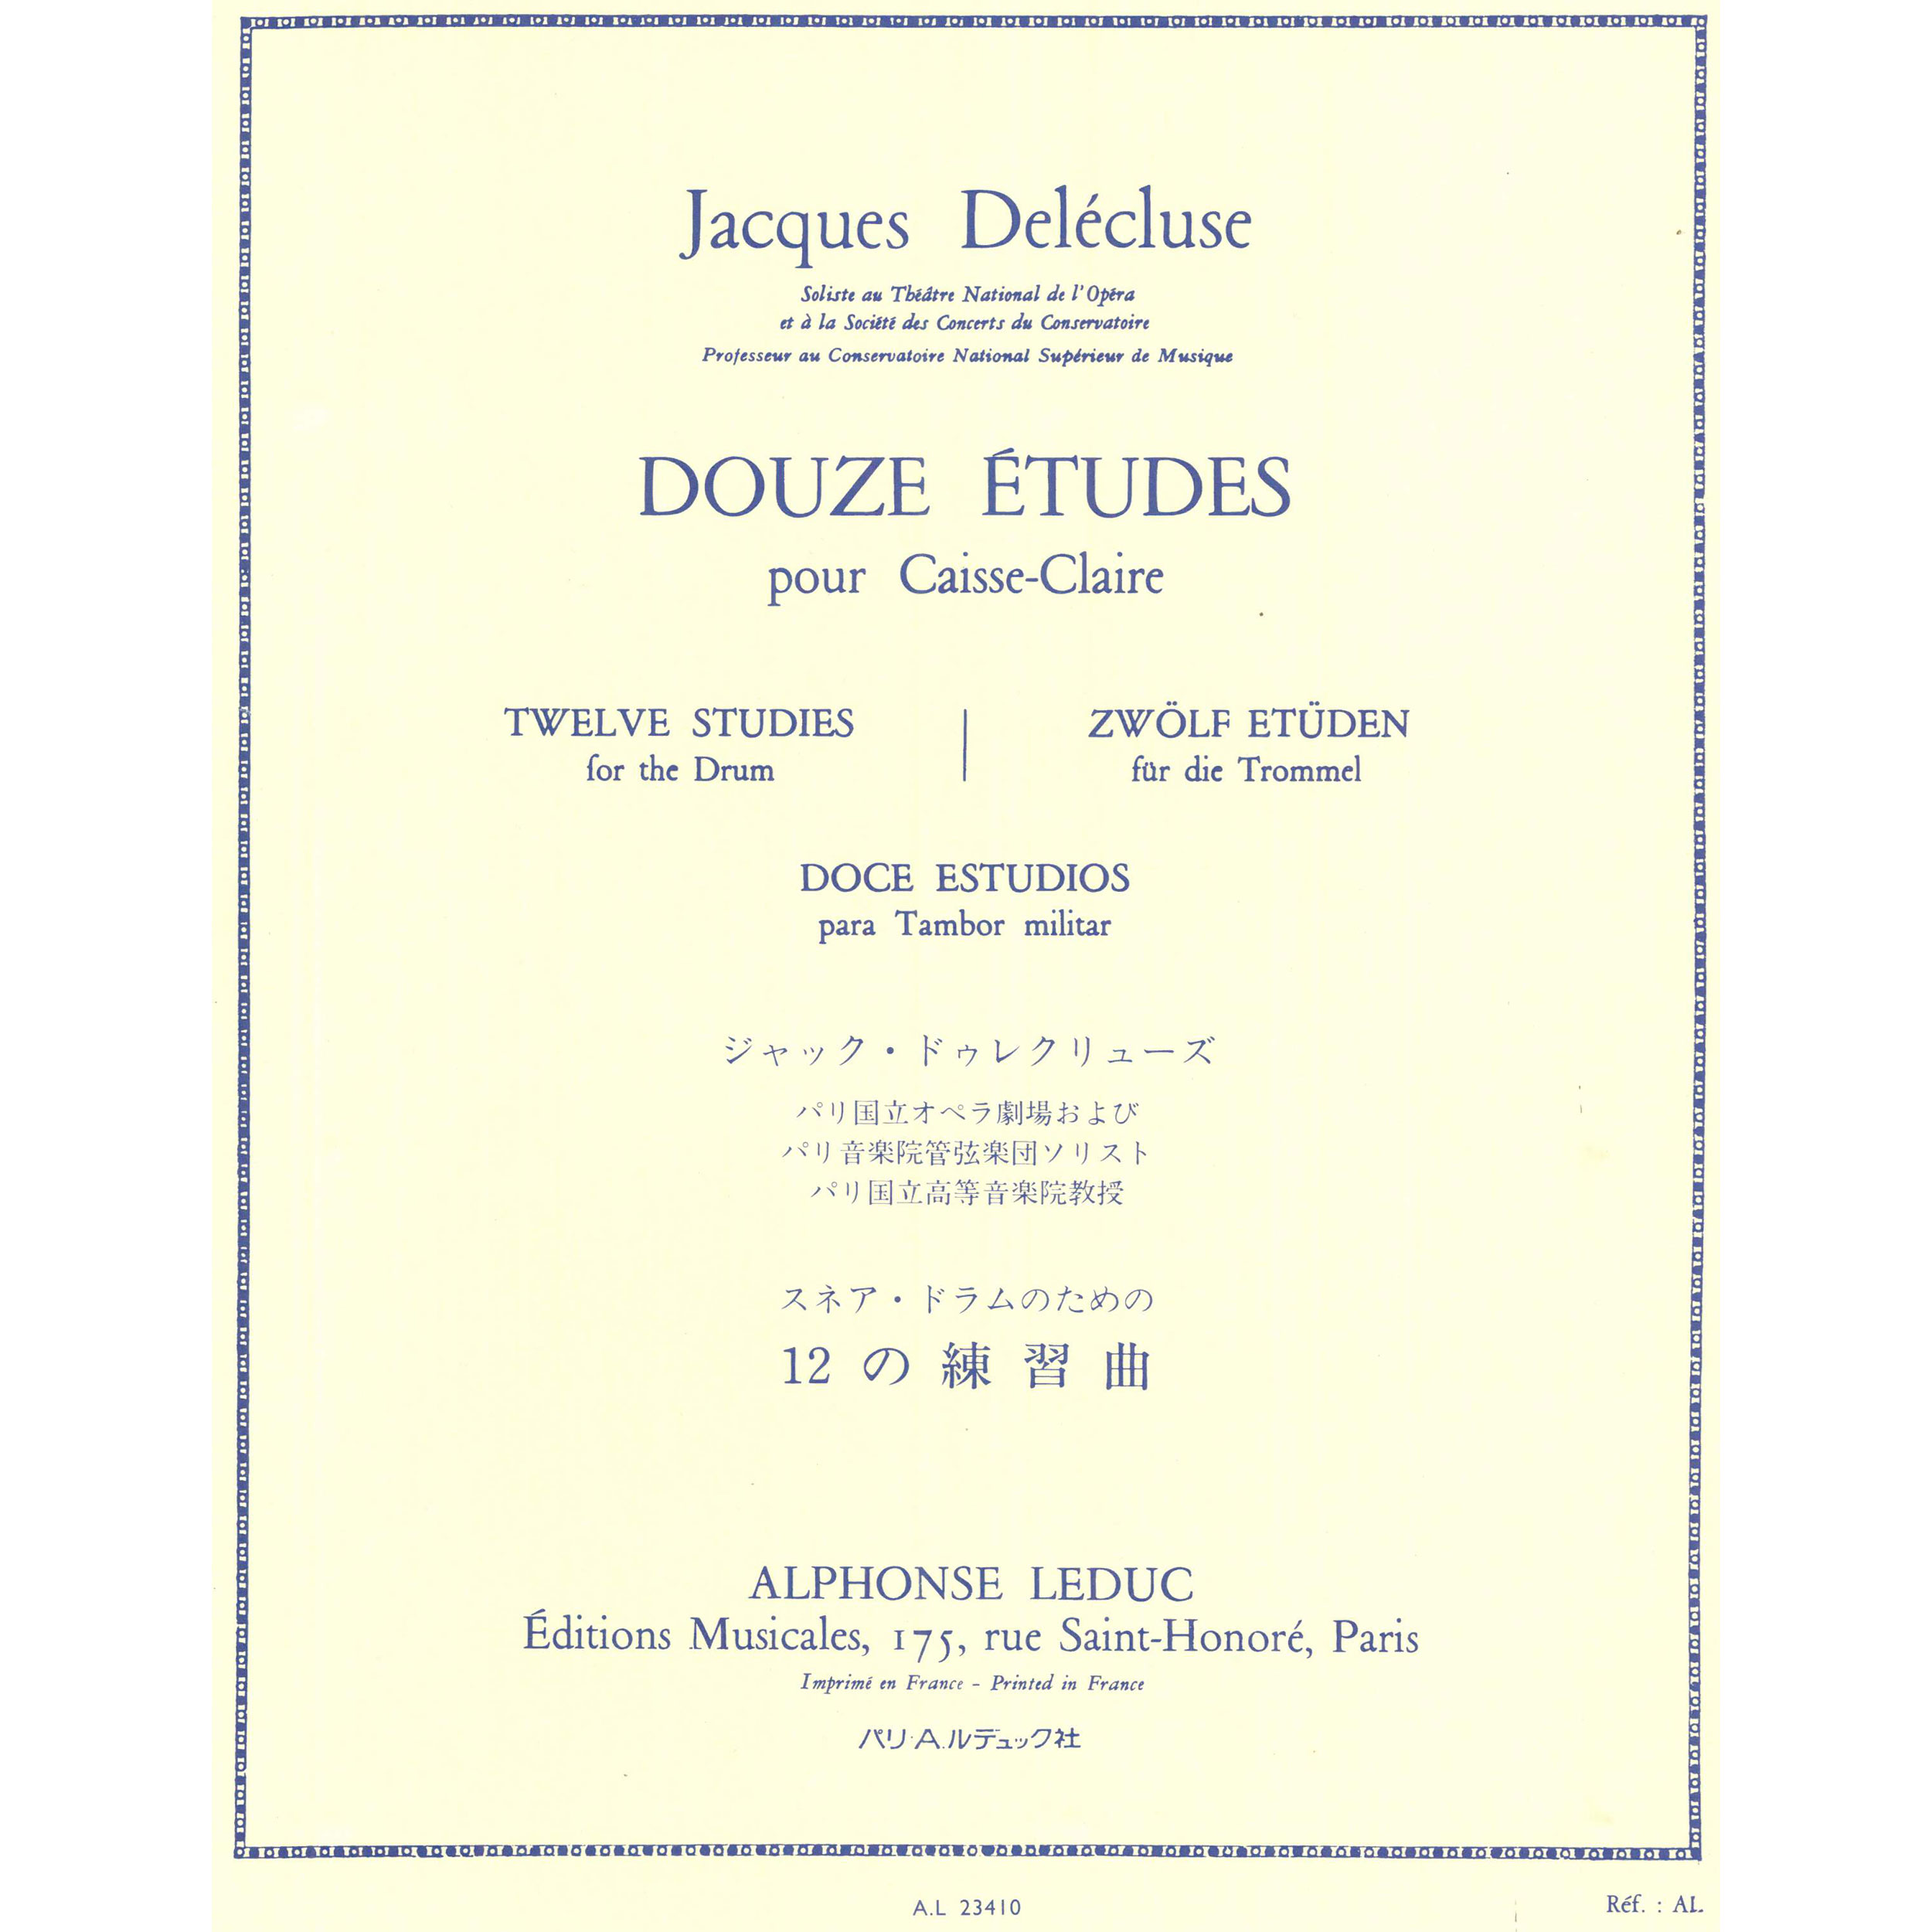 Douze Etudes (Twelve Studies) for Snare Drum by Jacques Delecluse